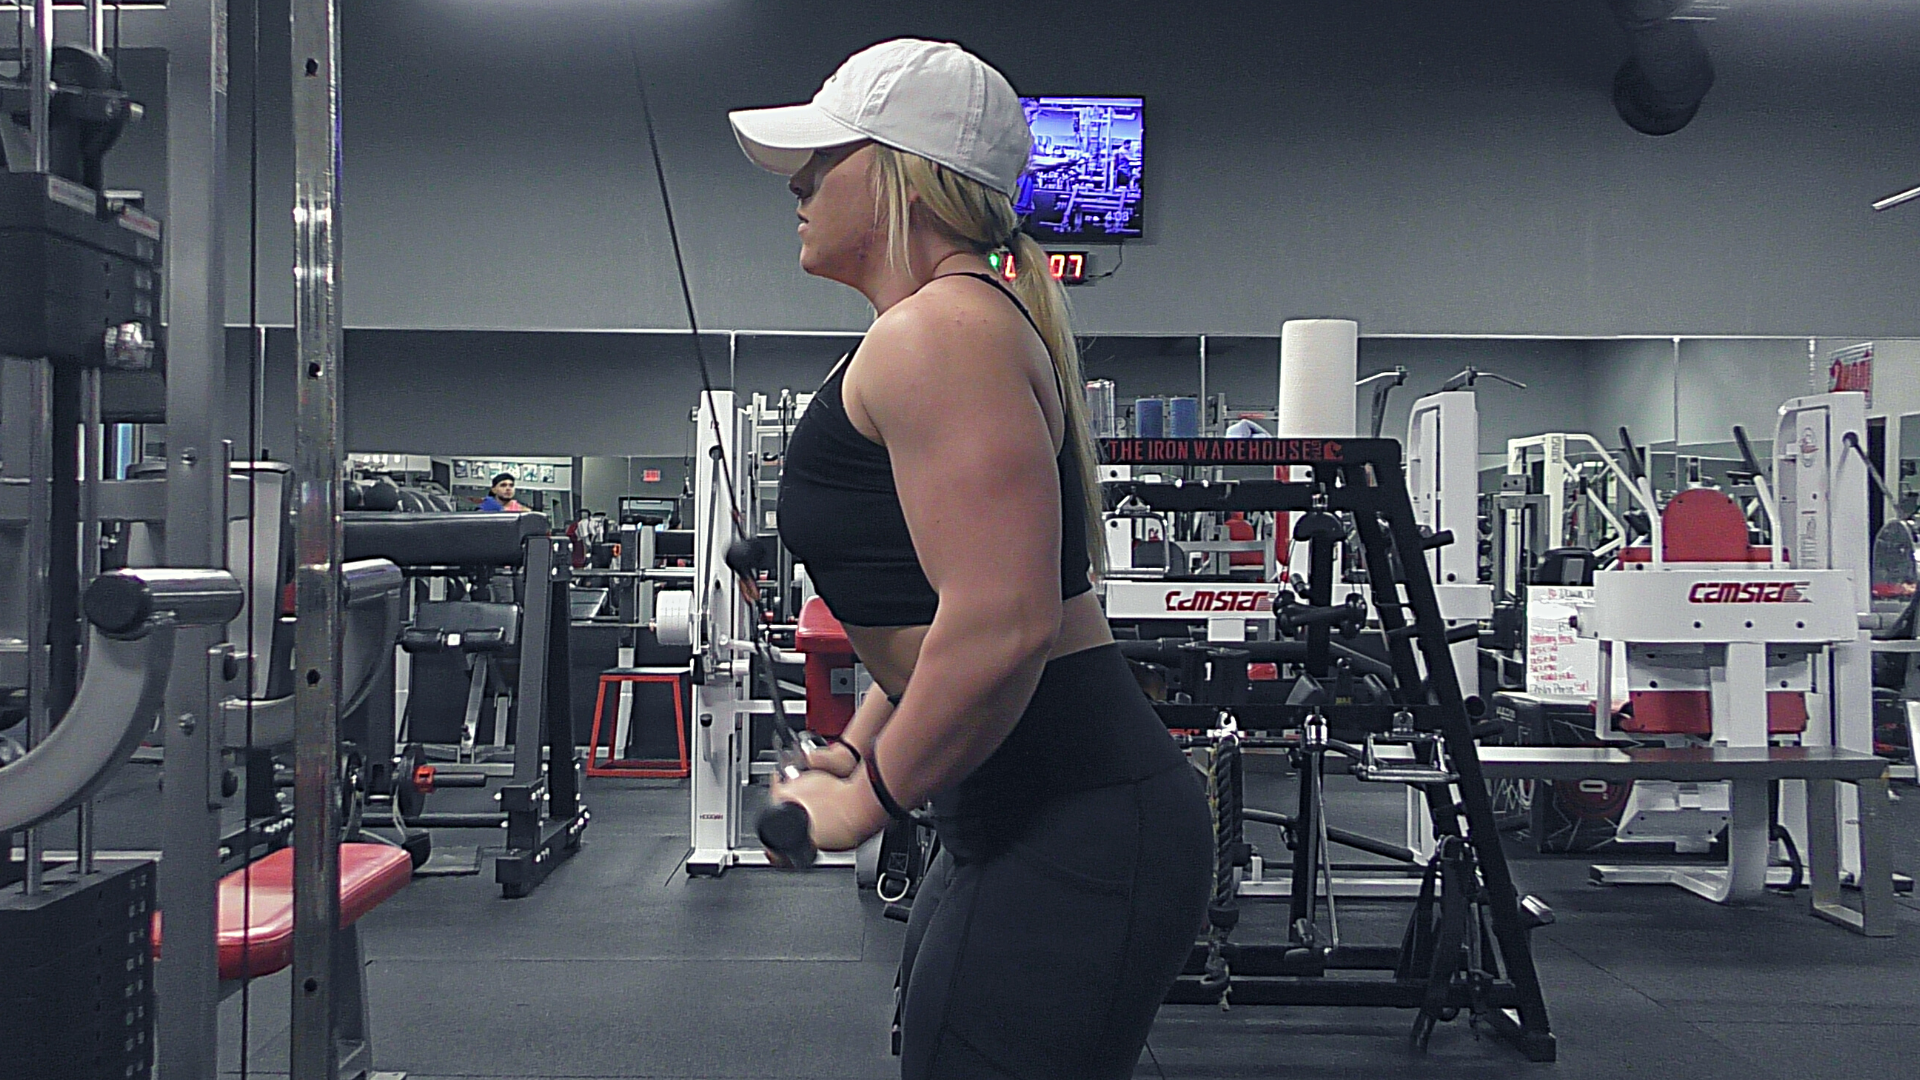 Blonde Woman doing tricep pressdowns in the gym.